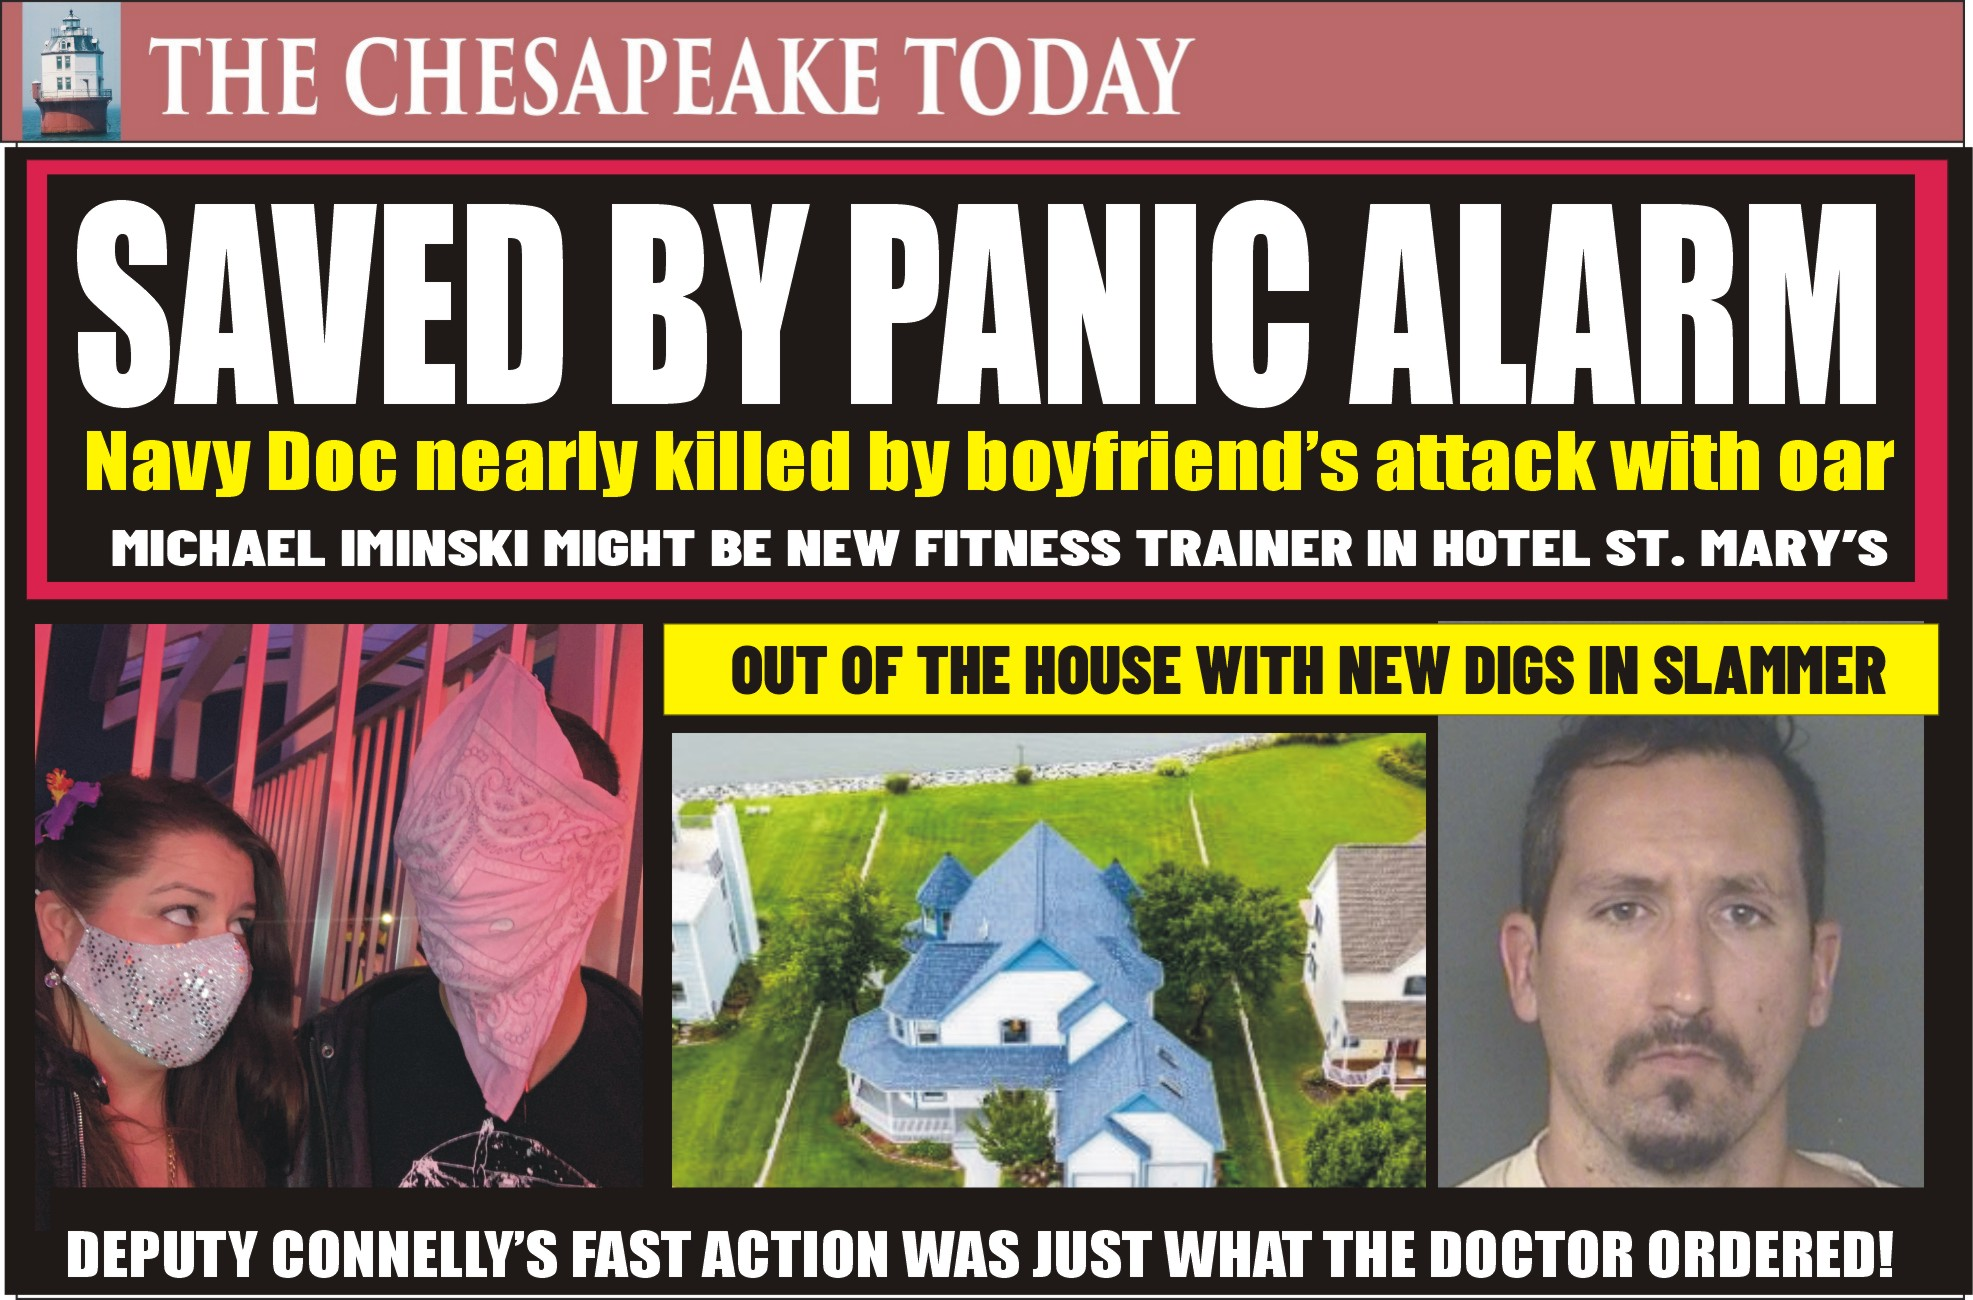 ASSAULT & MAYHEM: When Dr. Randal Cieslak was nearly choked to death by her boyfriend crushing her throat with an oar, only a key Fob panic alarm saved her life